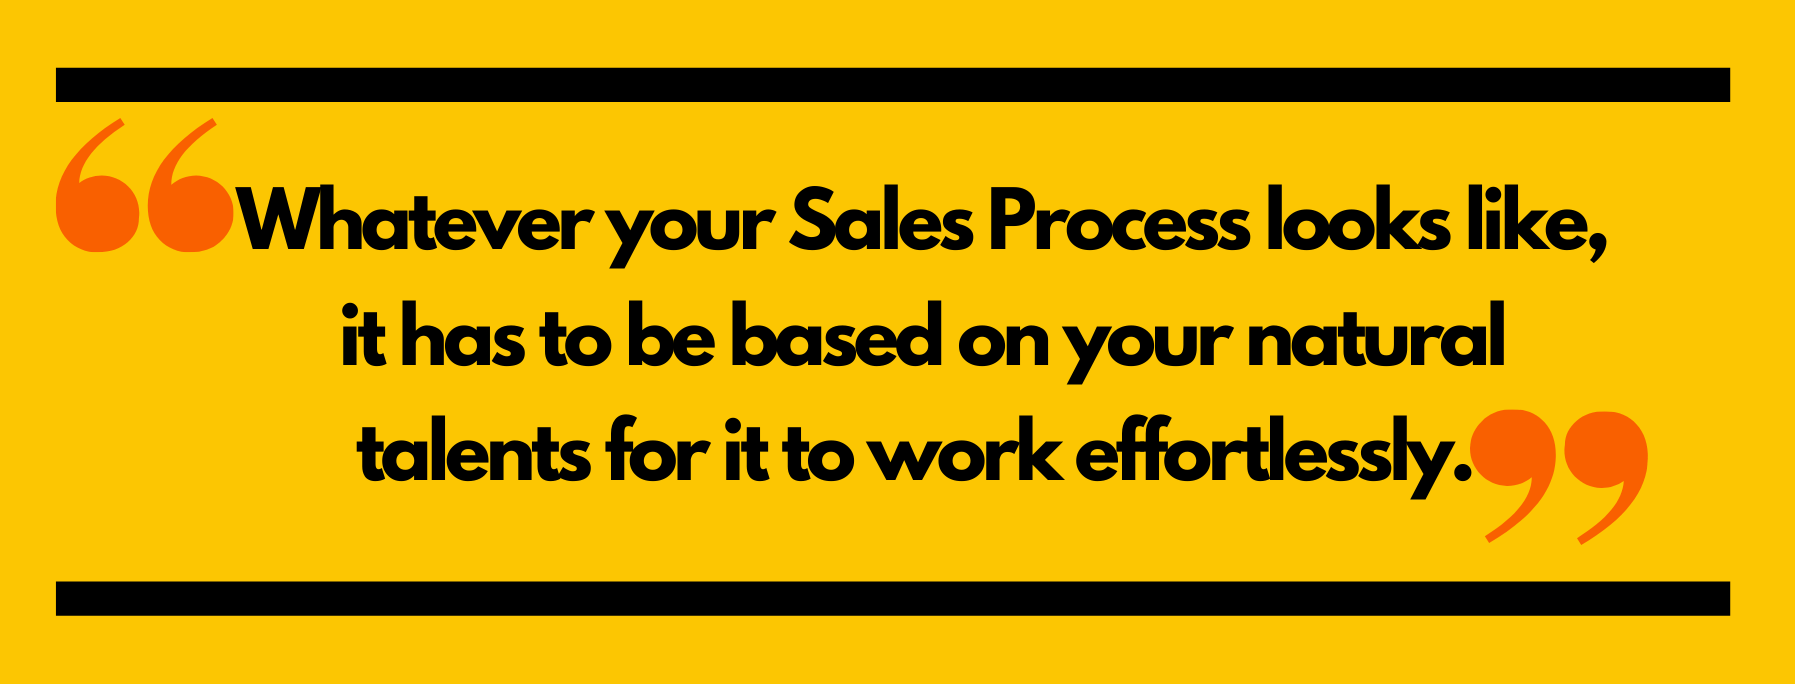 the best sales process is also based on your talents